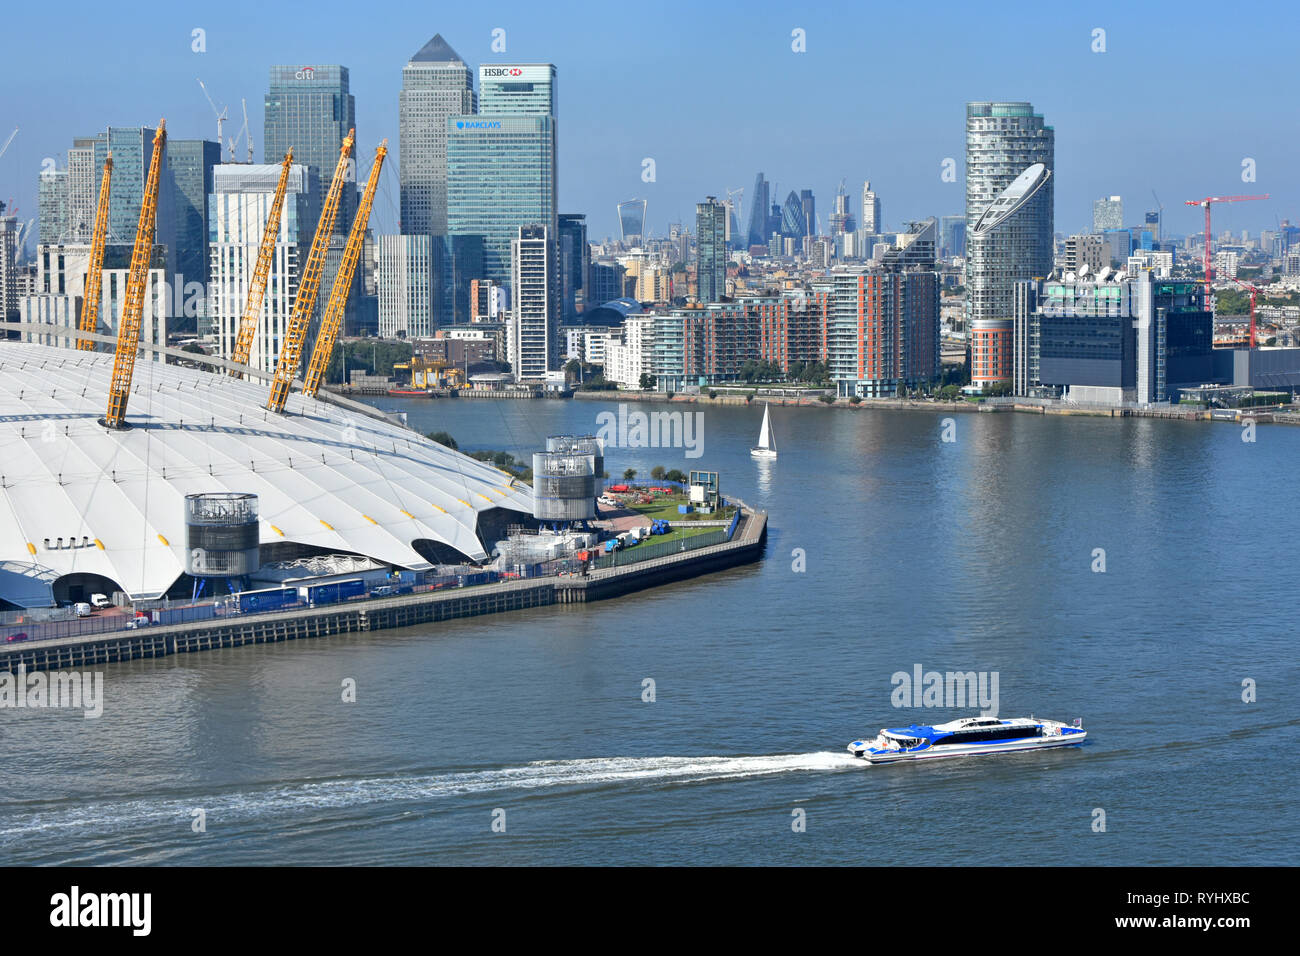 Aerial view looking down from above at bend in River Thames with clipper boat & London Canary Wharf cityscape skyline o2 arena dome roof Greenwich UK - Stock Image